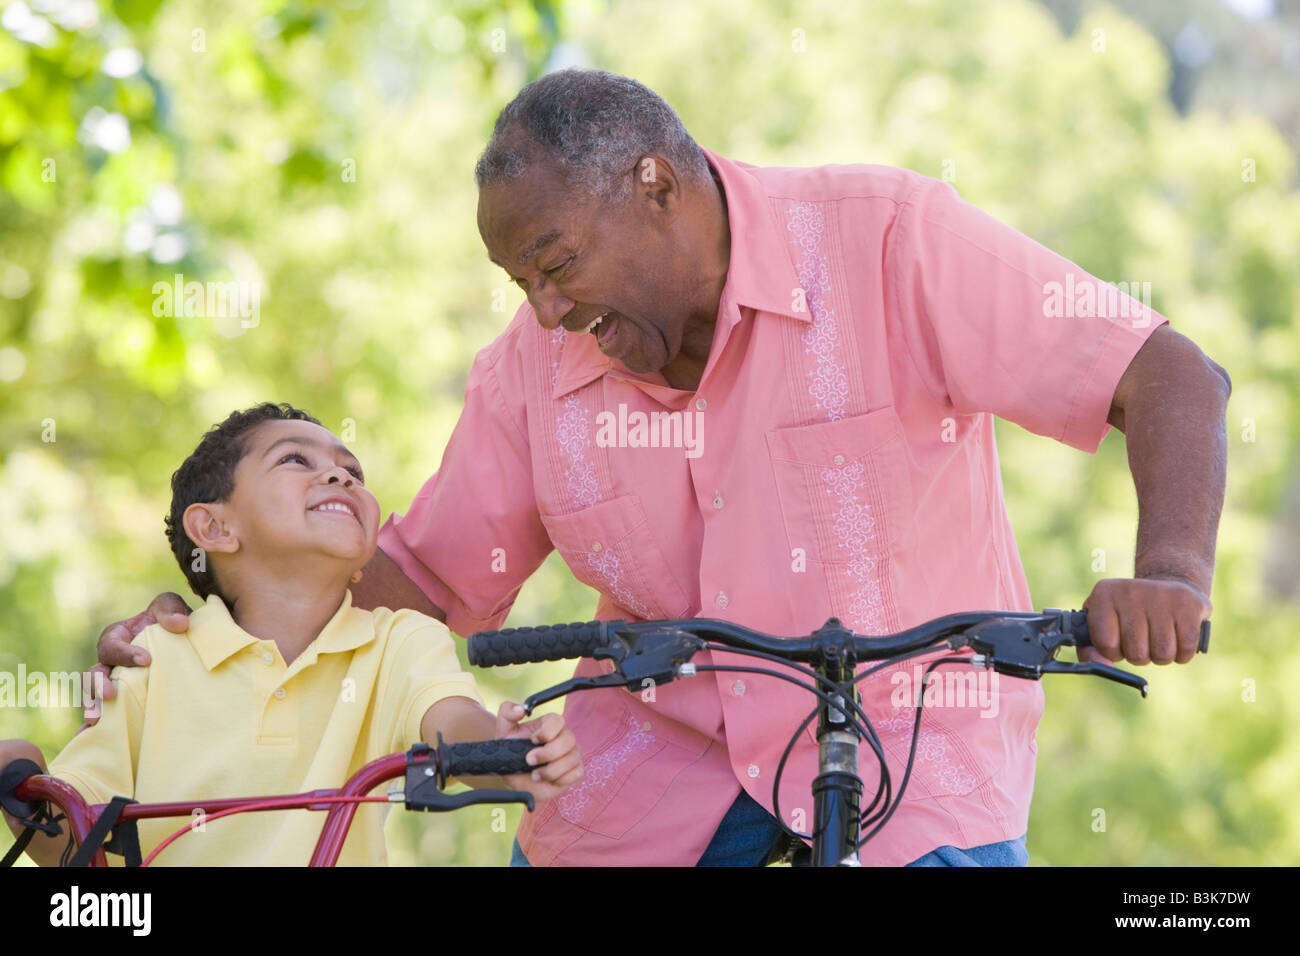 Grandfather and grandson on bikes outdoors smiling Stock Foto